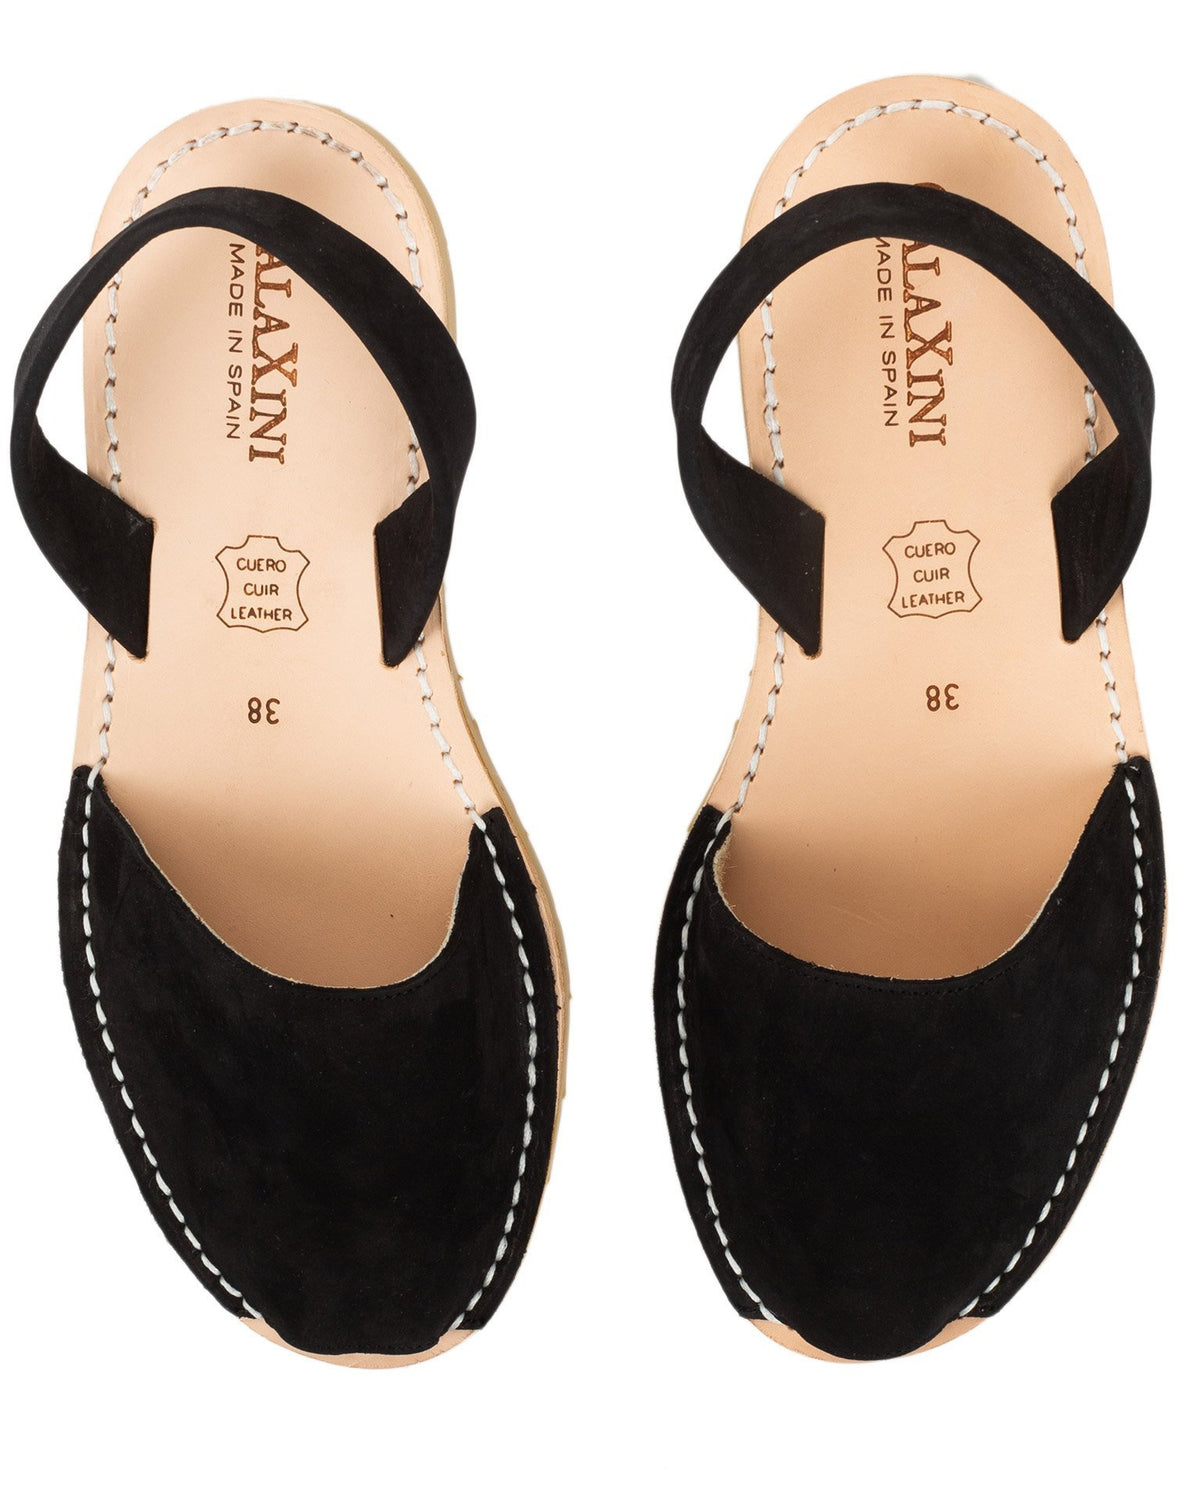 Calaxini Shoes Black Nubuck / EU 36 Verano Slide in Black Nubuck